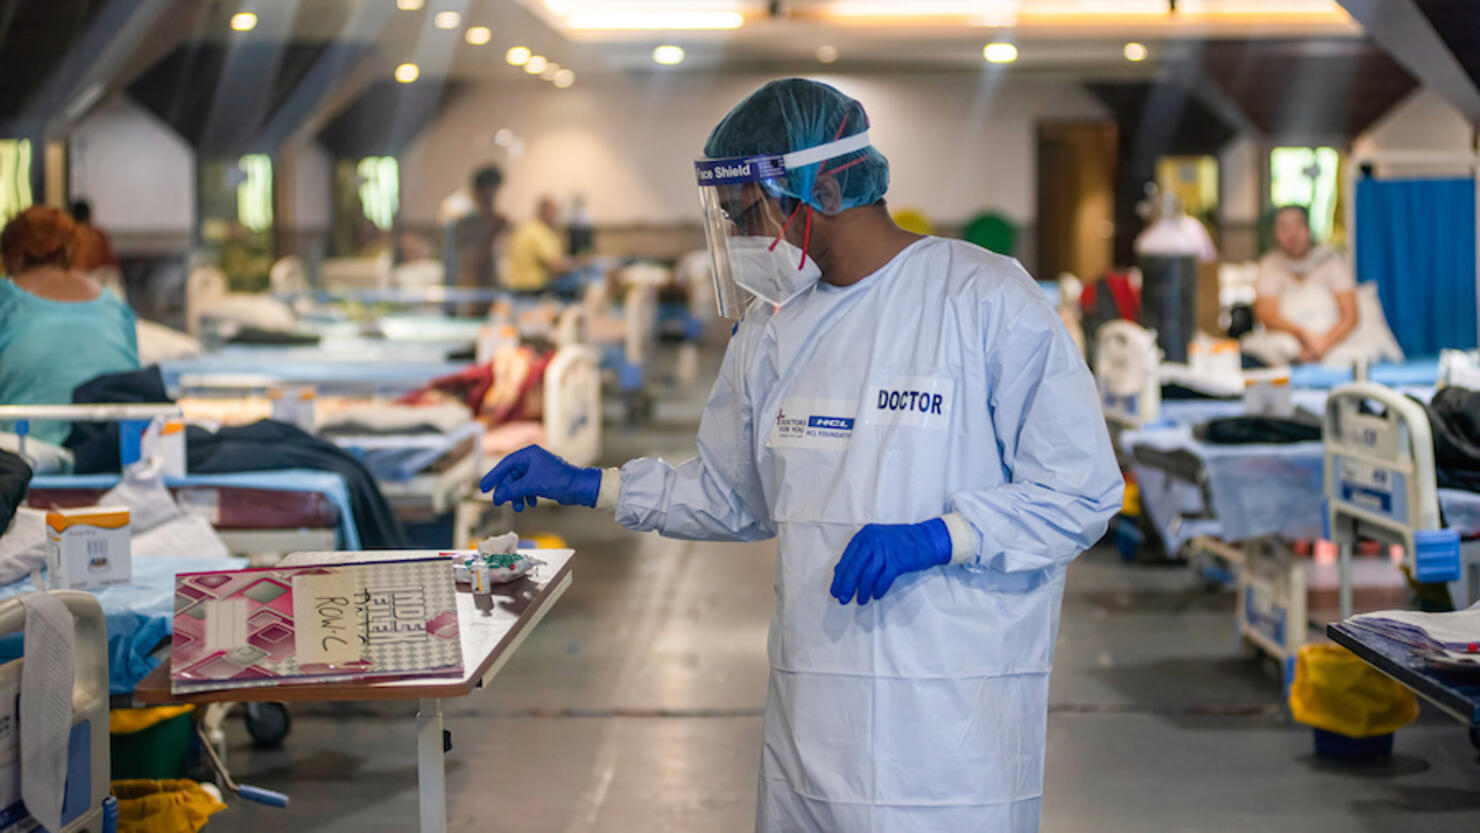 A doctor wearing a Personal Protective Equipment suite (PPE